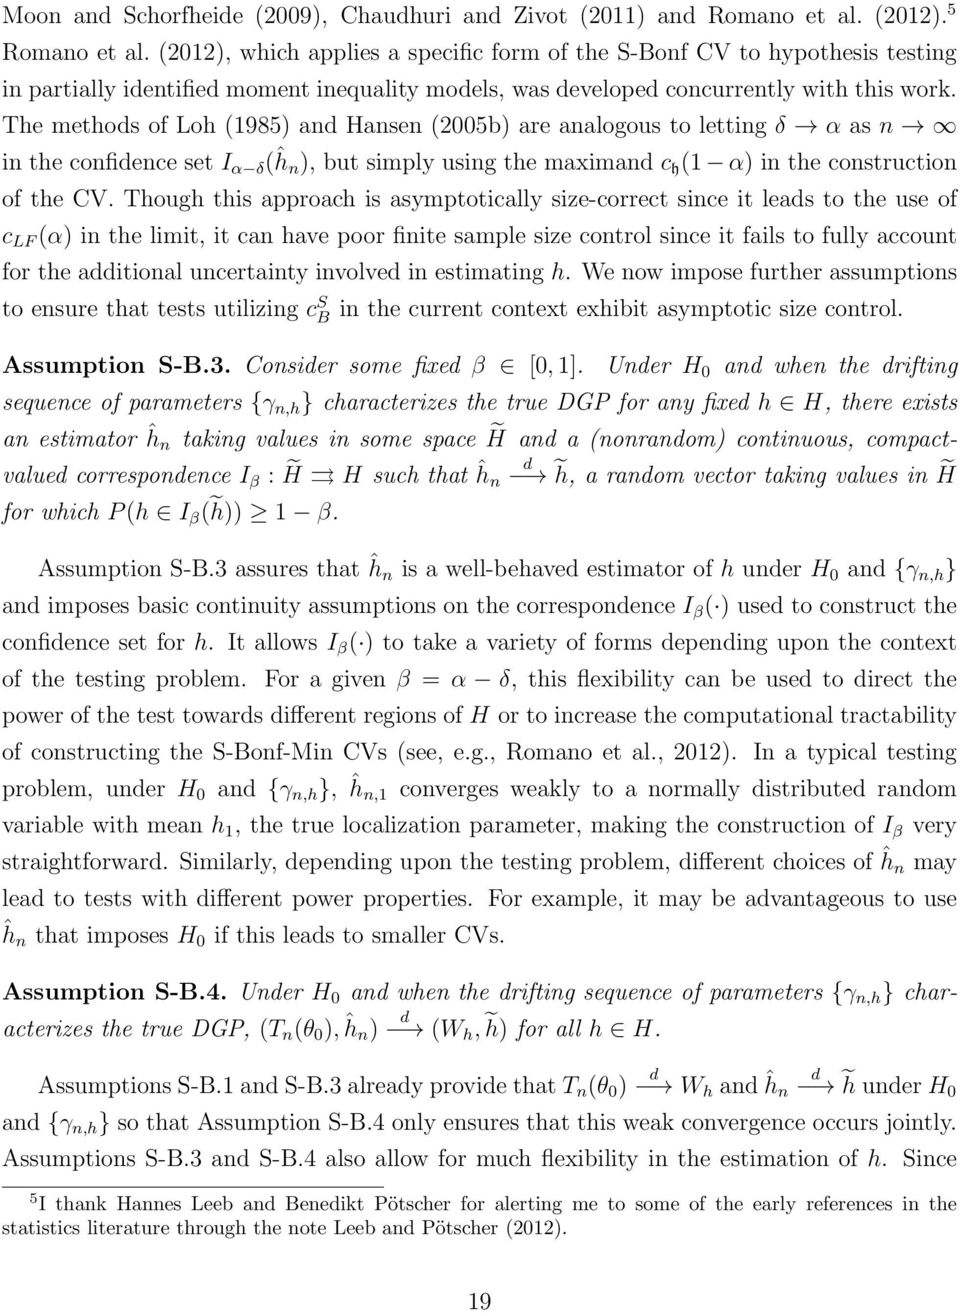 Te metods of Lo (1985) and Hansen (2005b) are analogous to letting δ α as n in te confidence set I α δ (ĥn), but simply using te maximand c (1 α) in te construction of te CV.